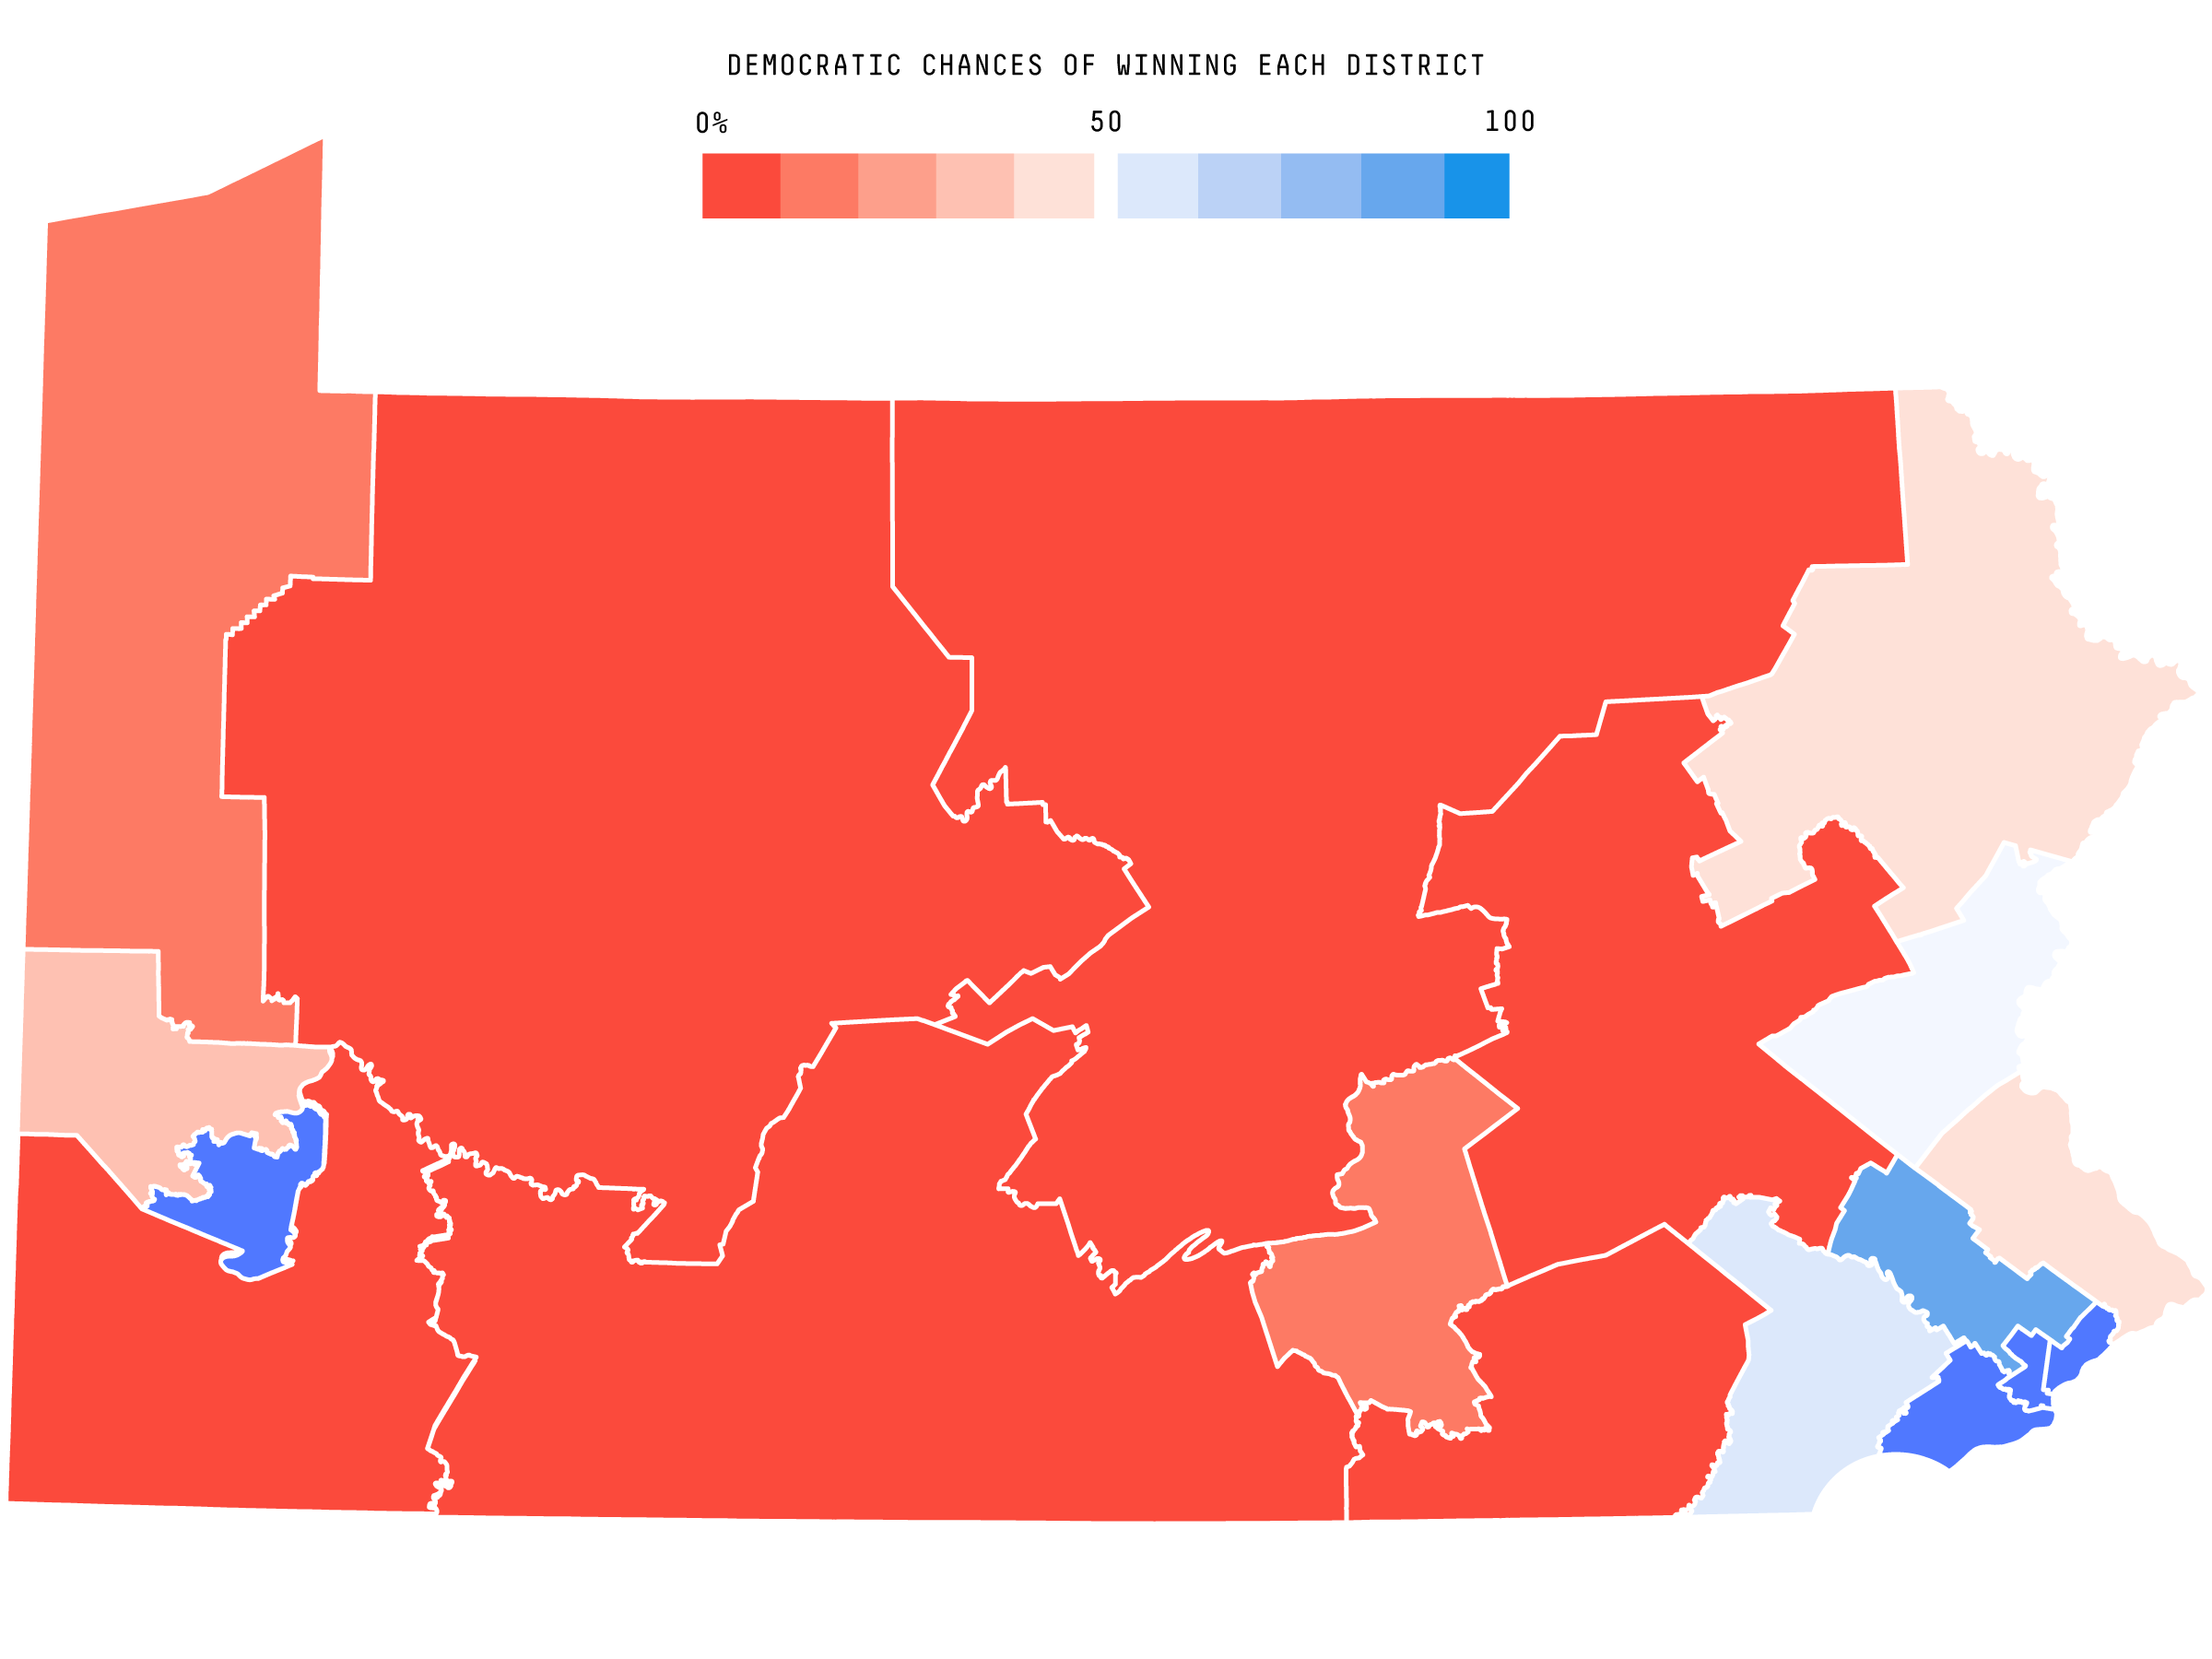 Pennsylvanias New Map Helps Democrats But Its Not A Democratic